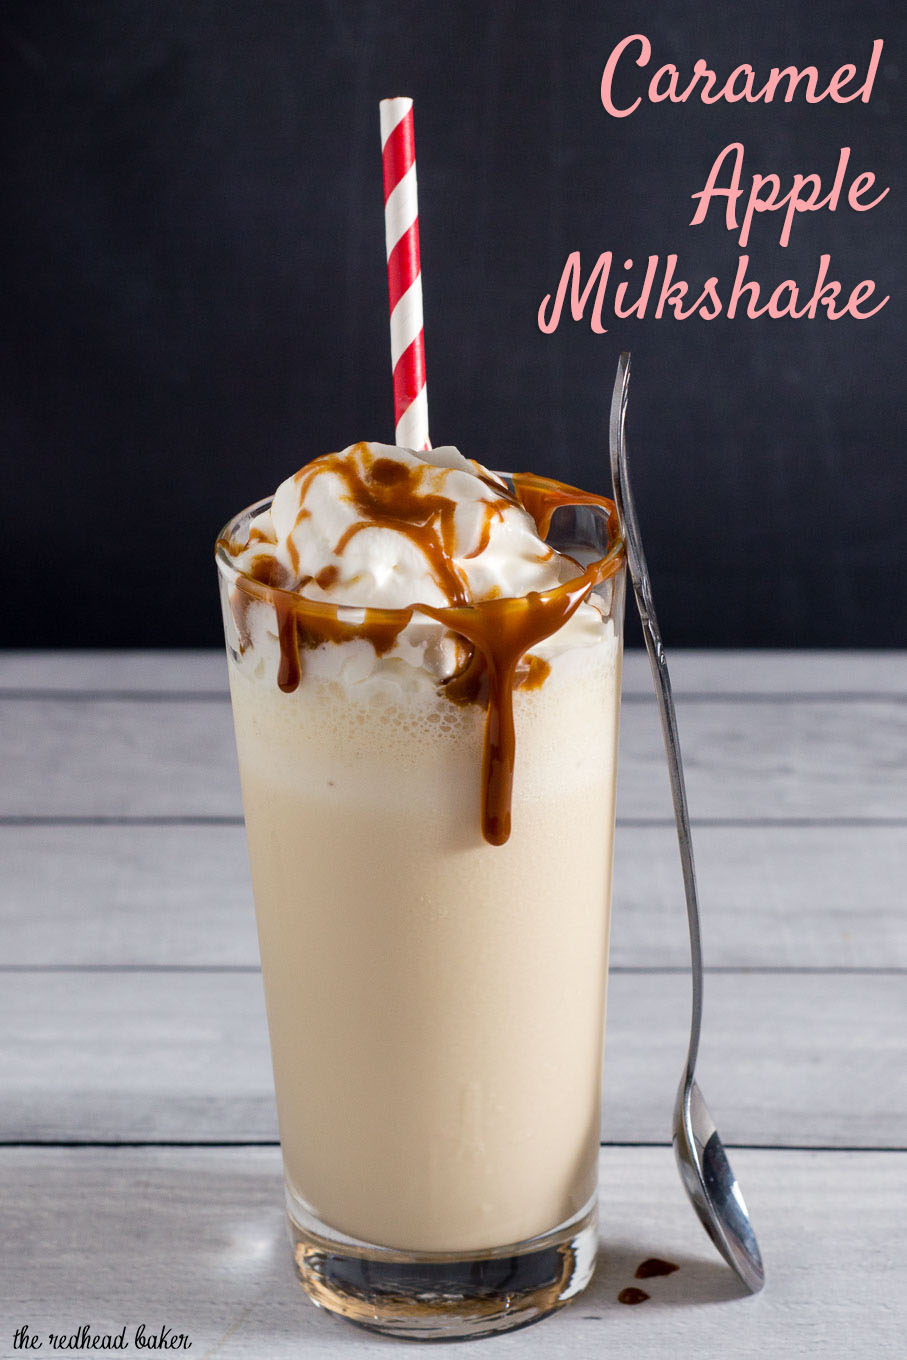 This caramel apple milkshake is a simple and delicious treat of blended vanilla ice cream, apple cider and caramel sauce.